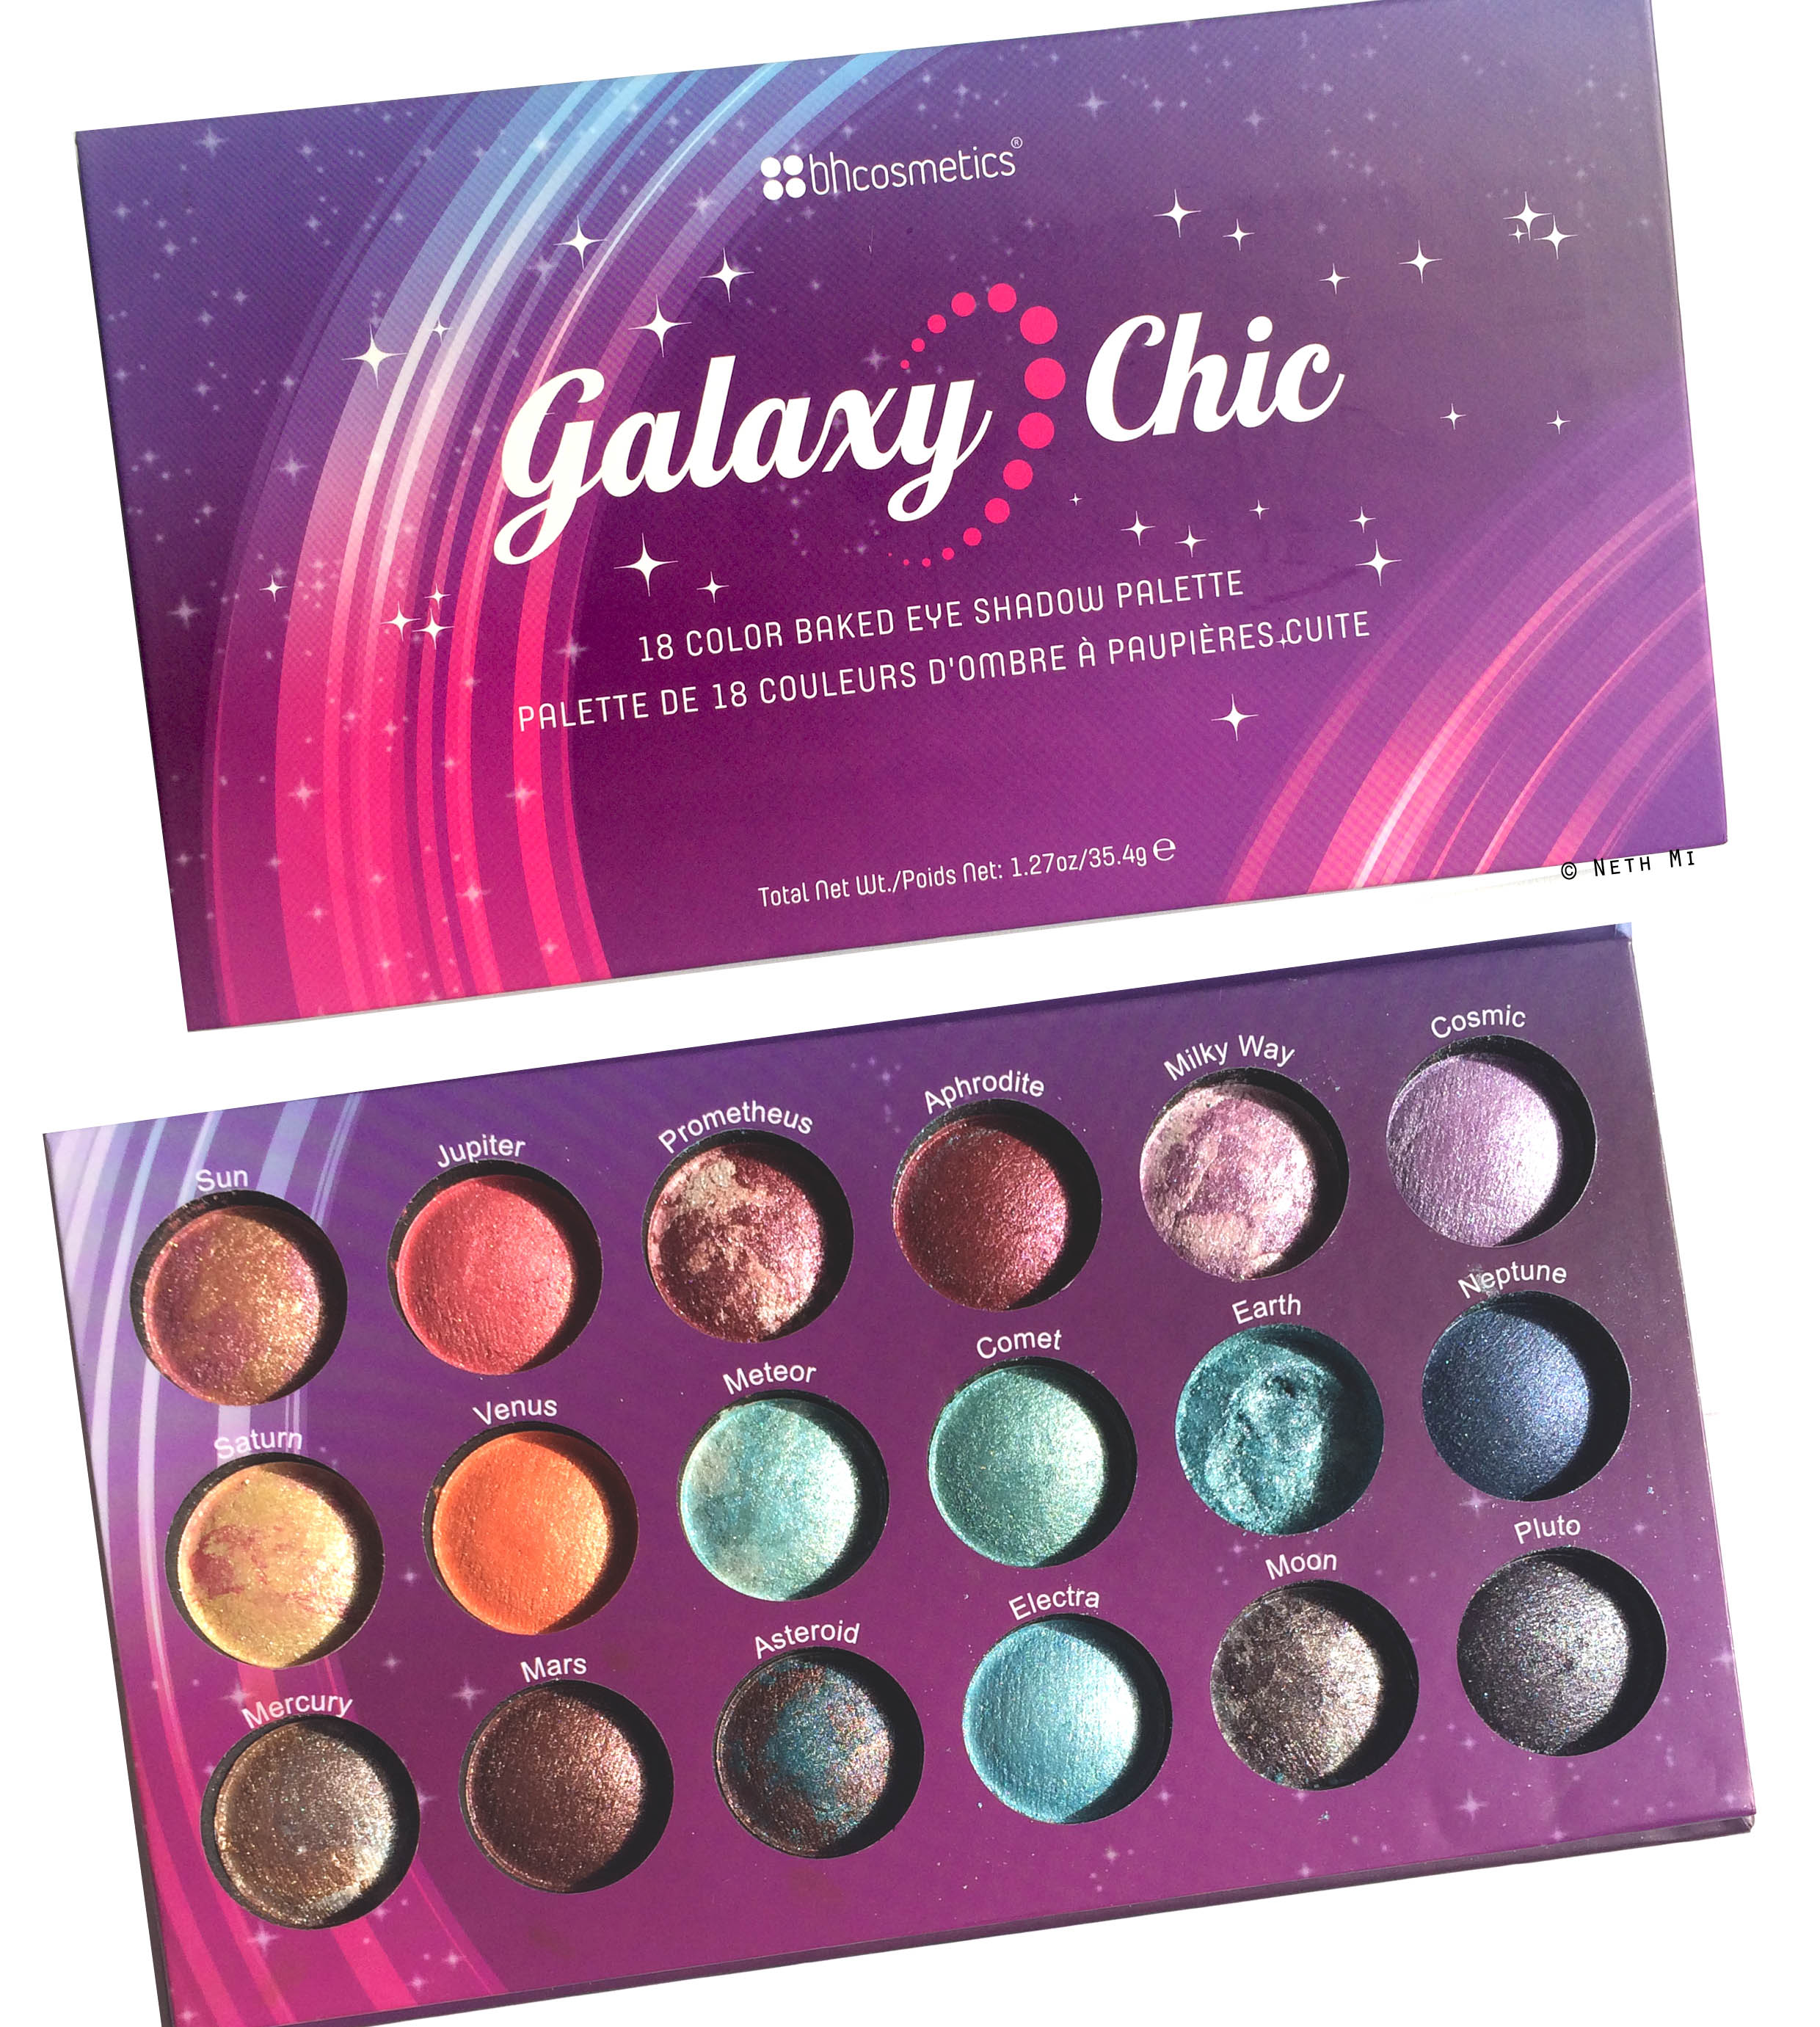 Galaxy Chic Baked Eyeshadow Palette by BH Cosmetics #21